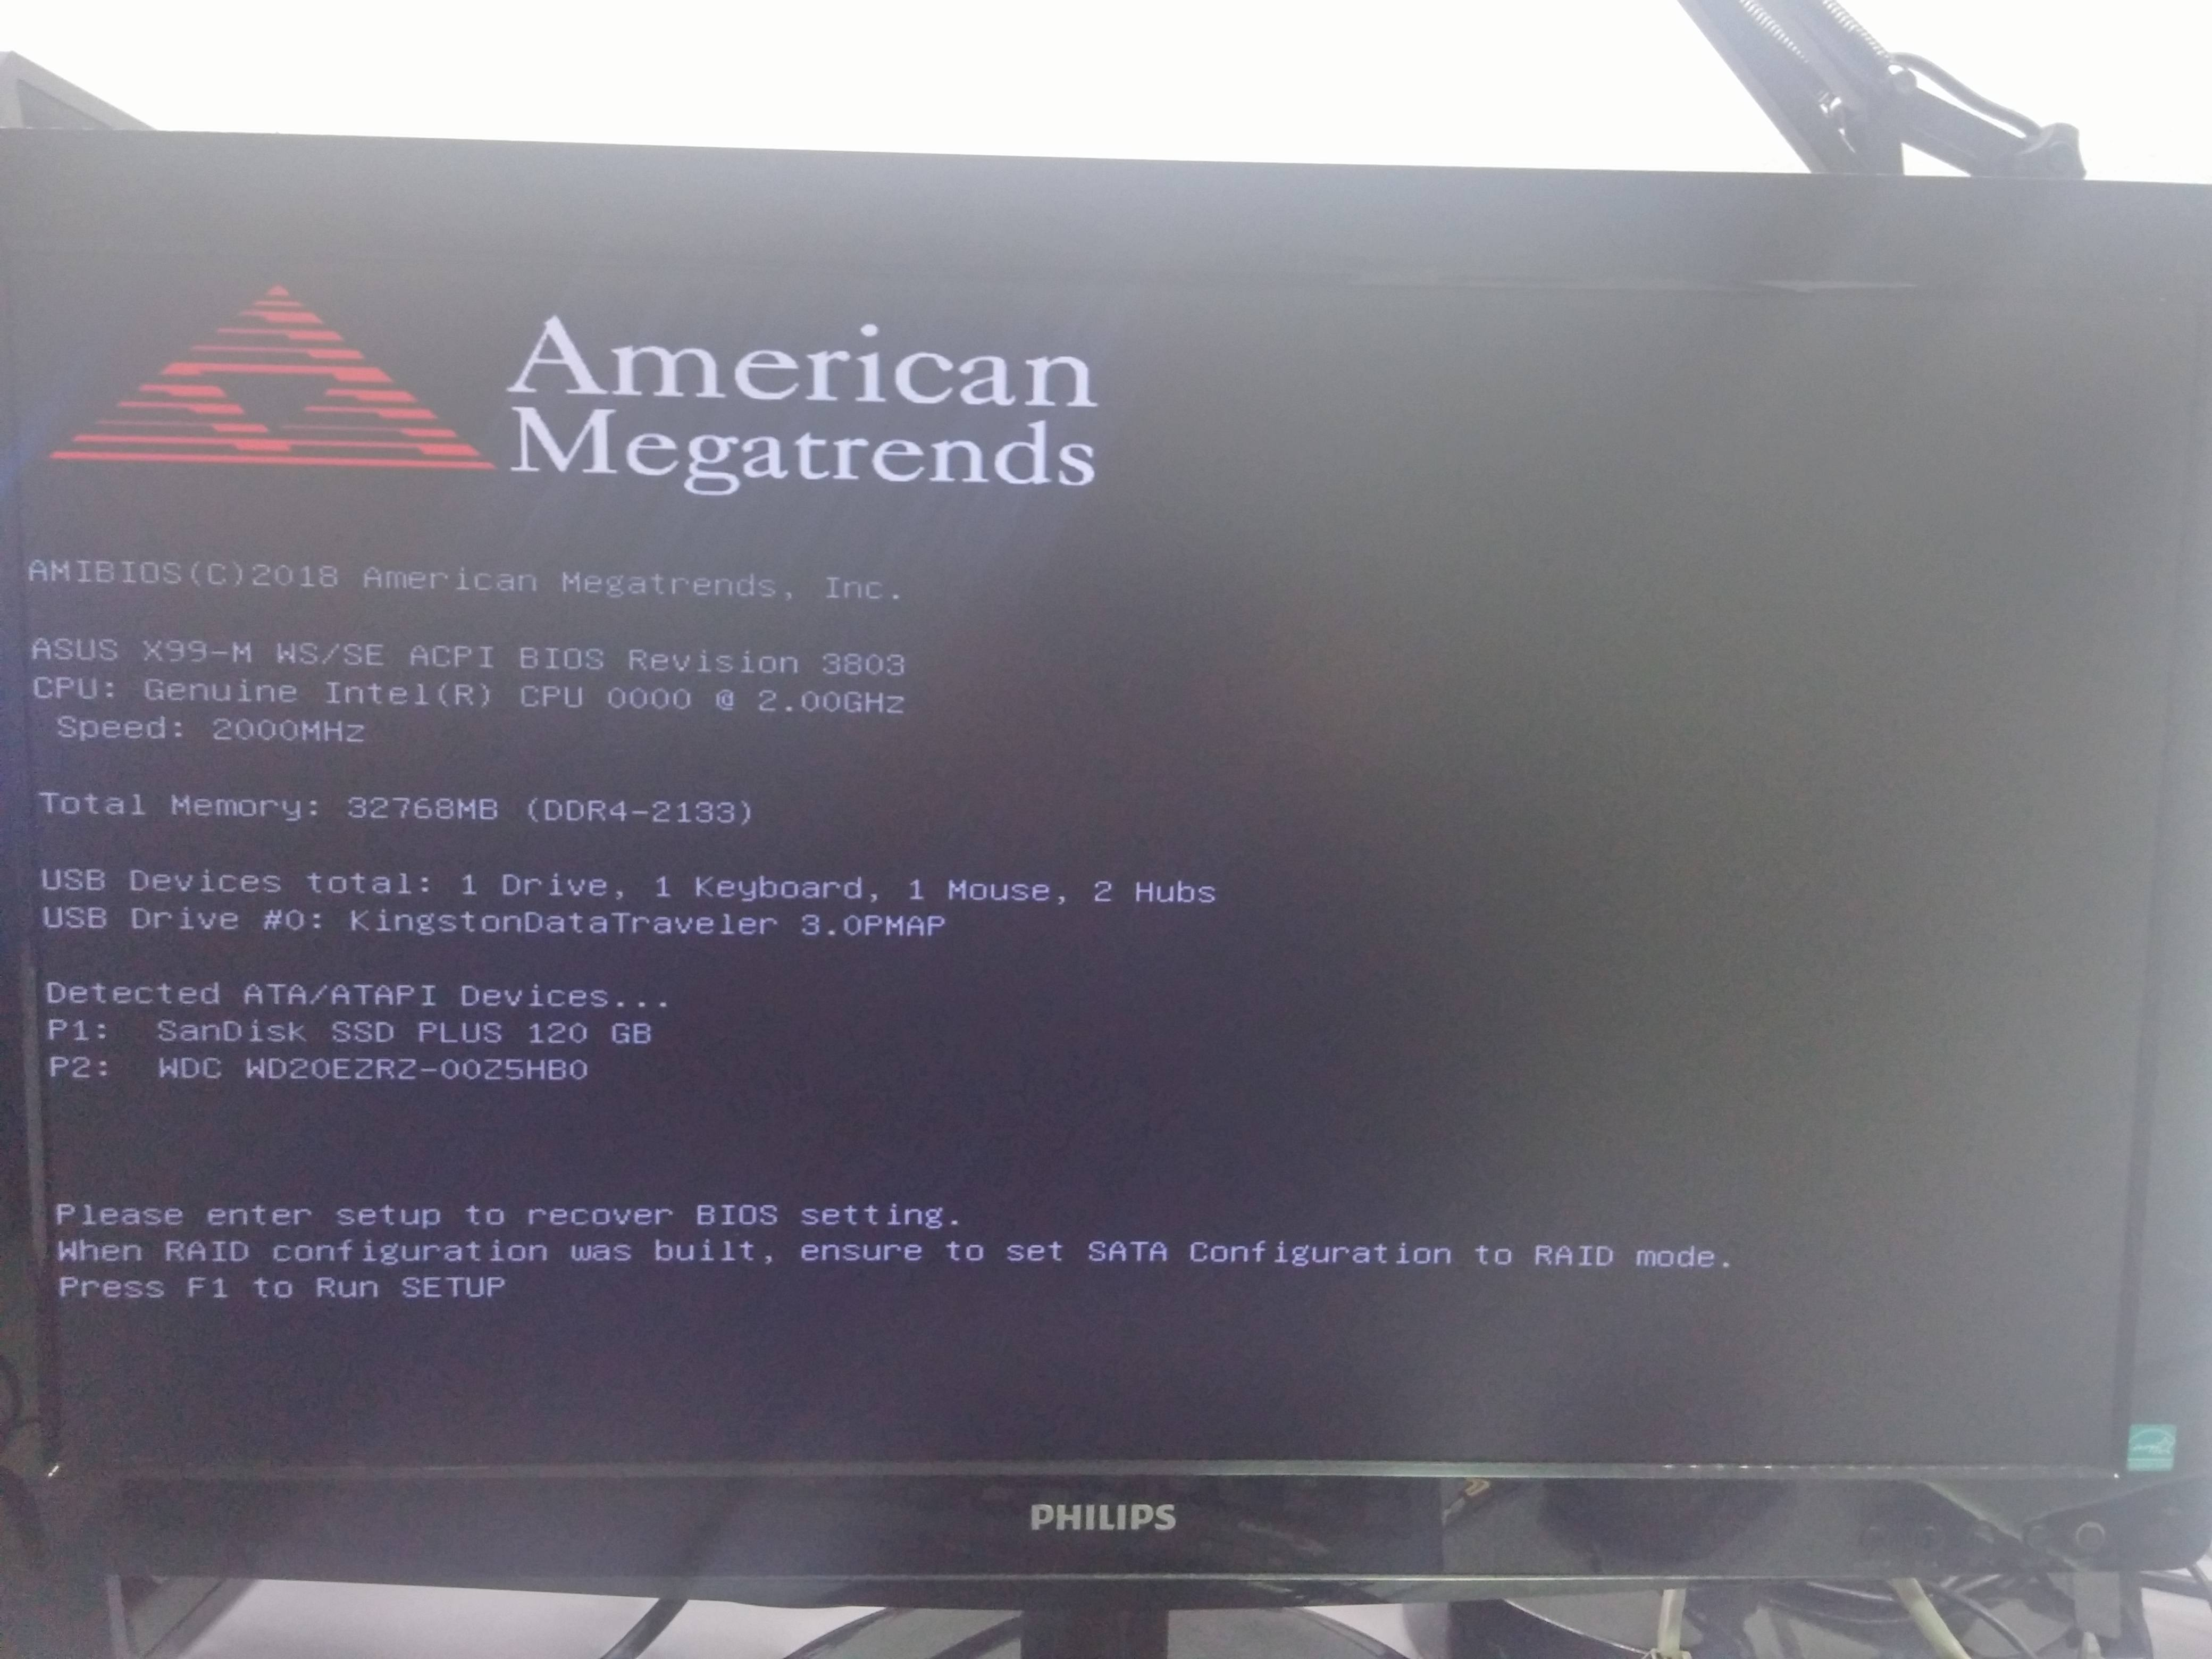 Asus X99 M WS/SE doesn't boot - Troubleshooting - Linus Tech Tips